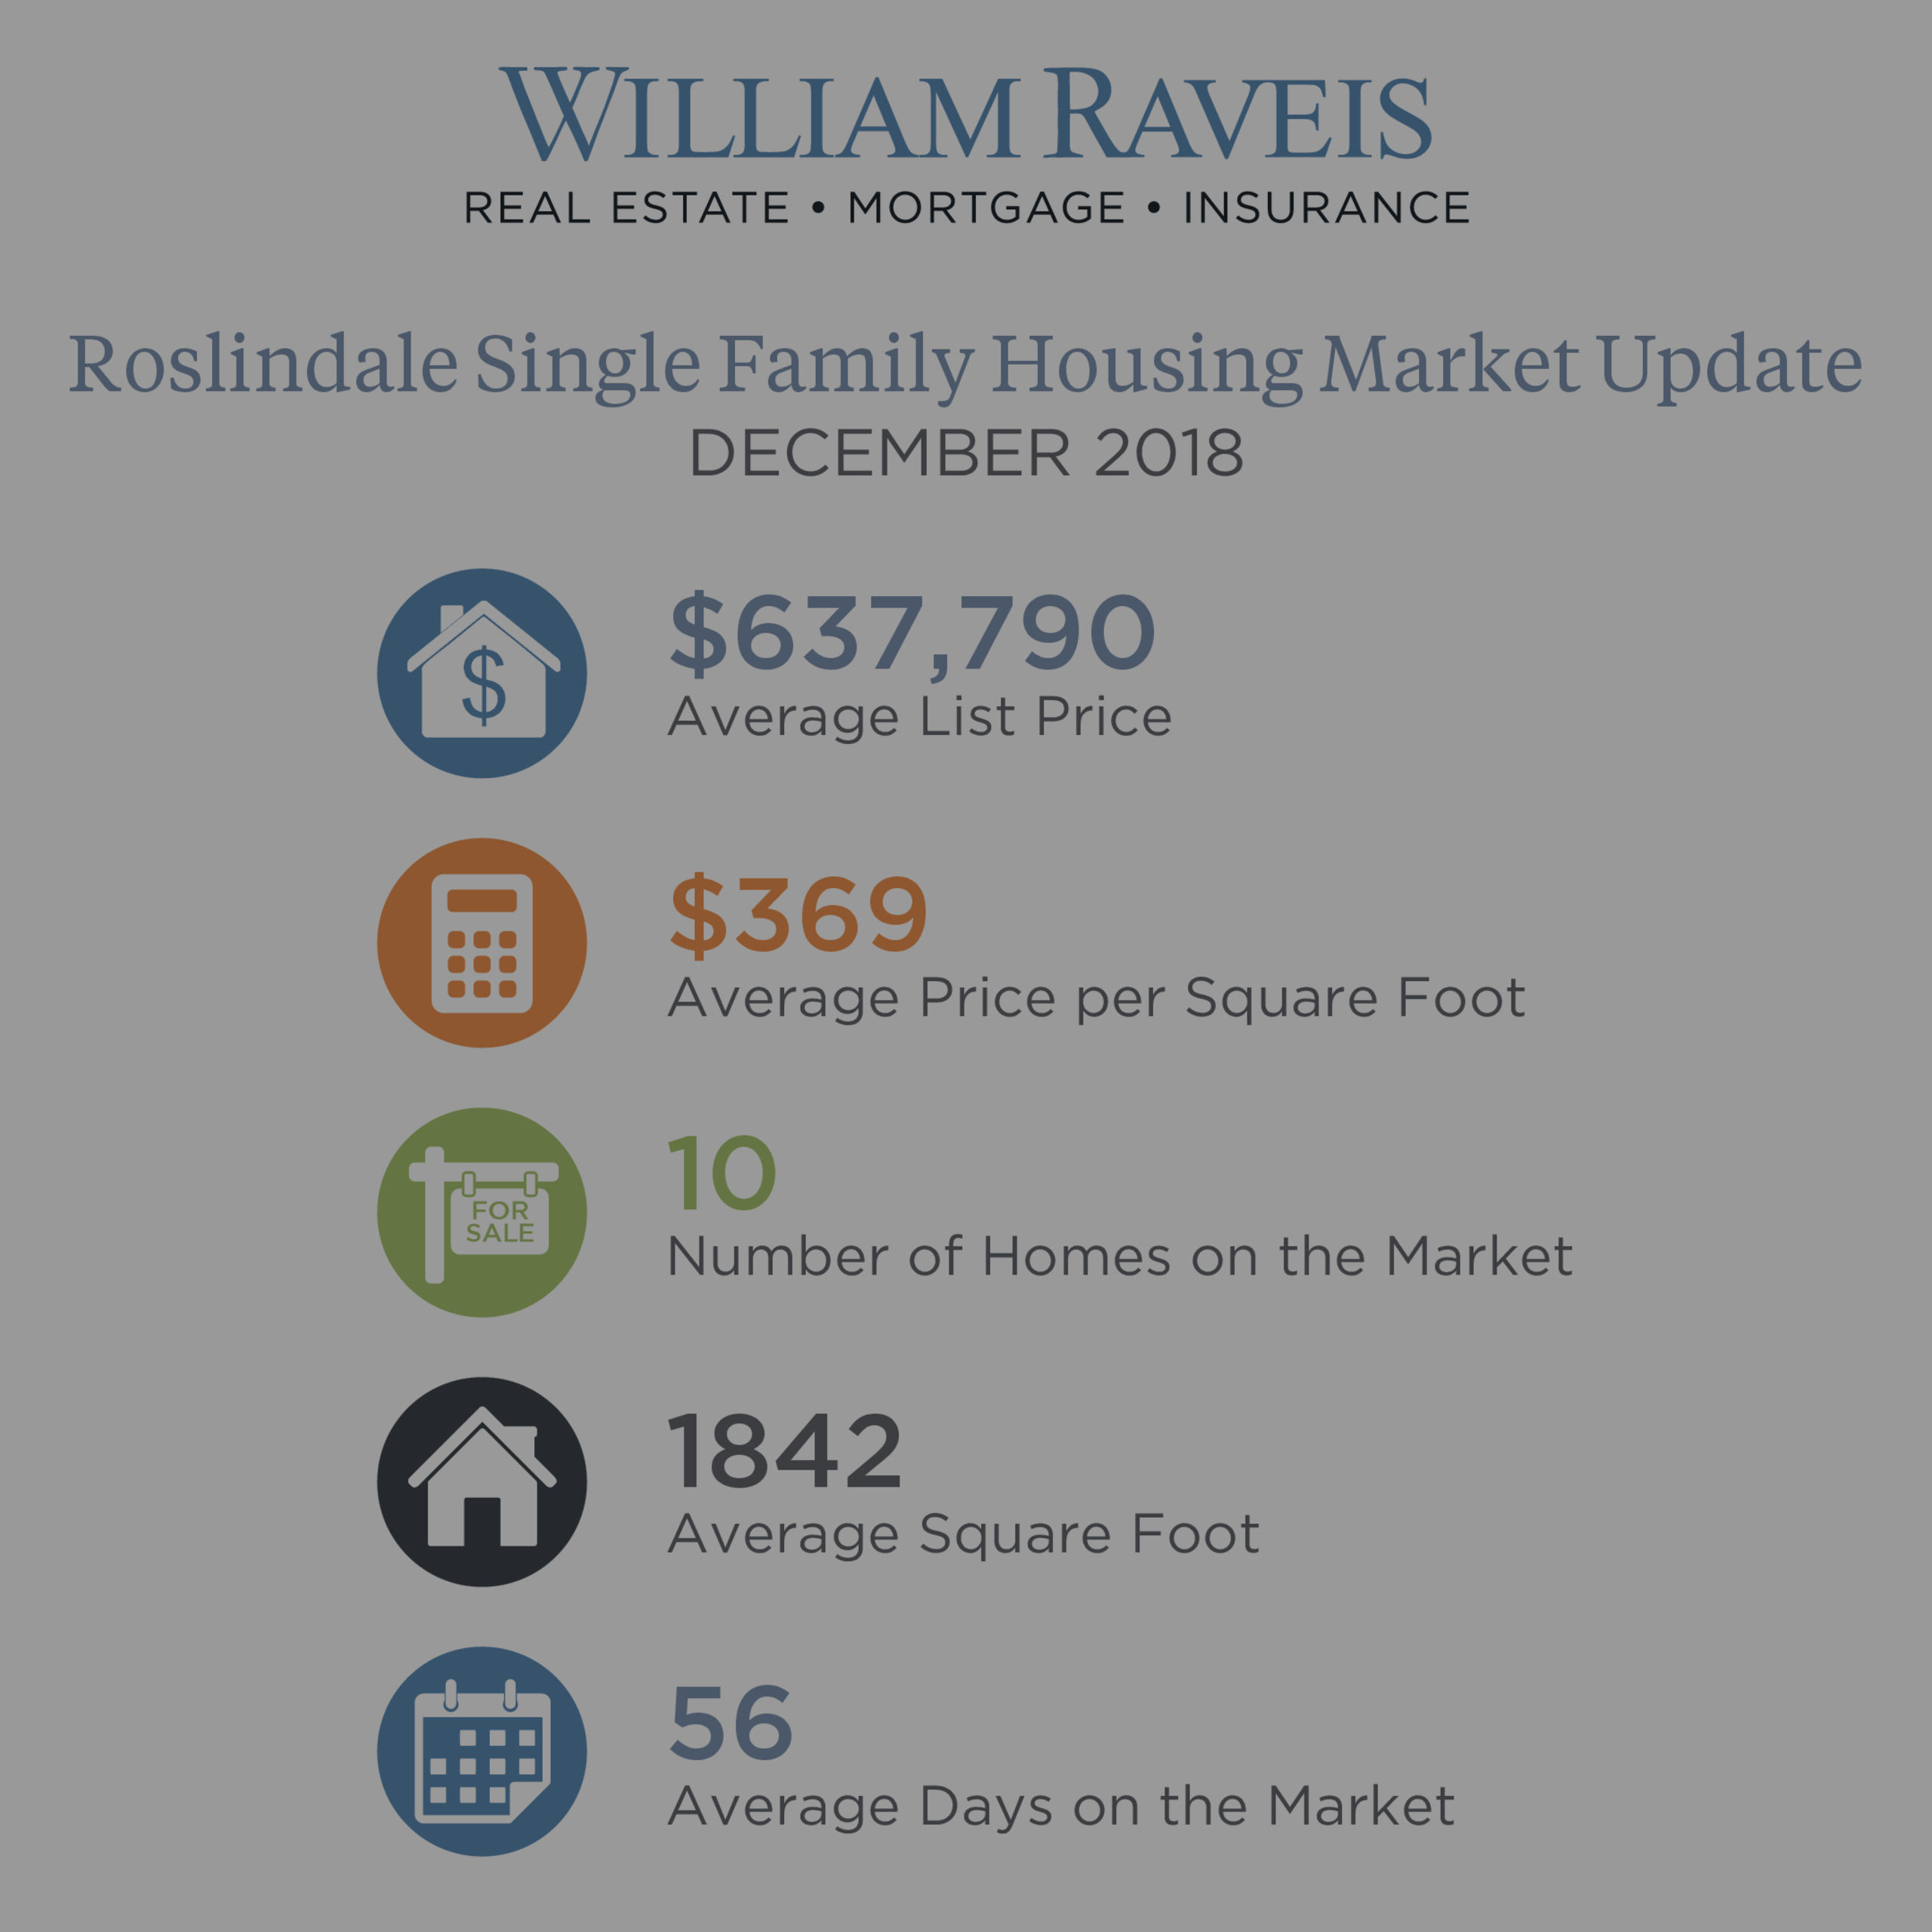 Roslindale Housing Market Update December 2018